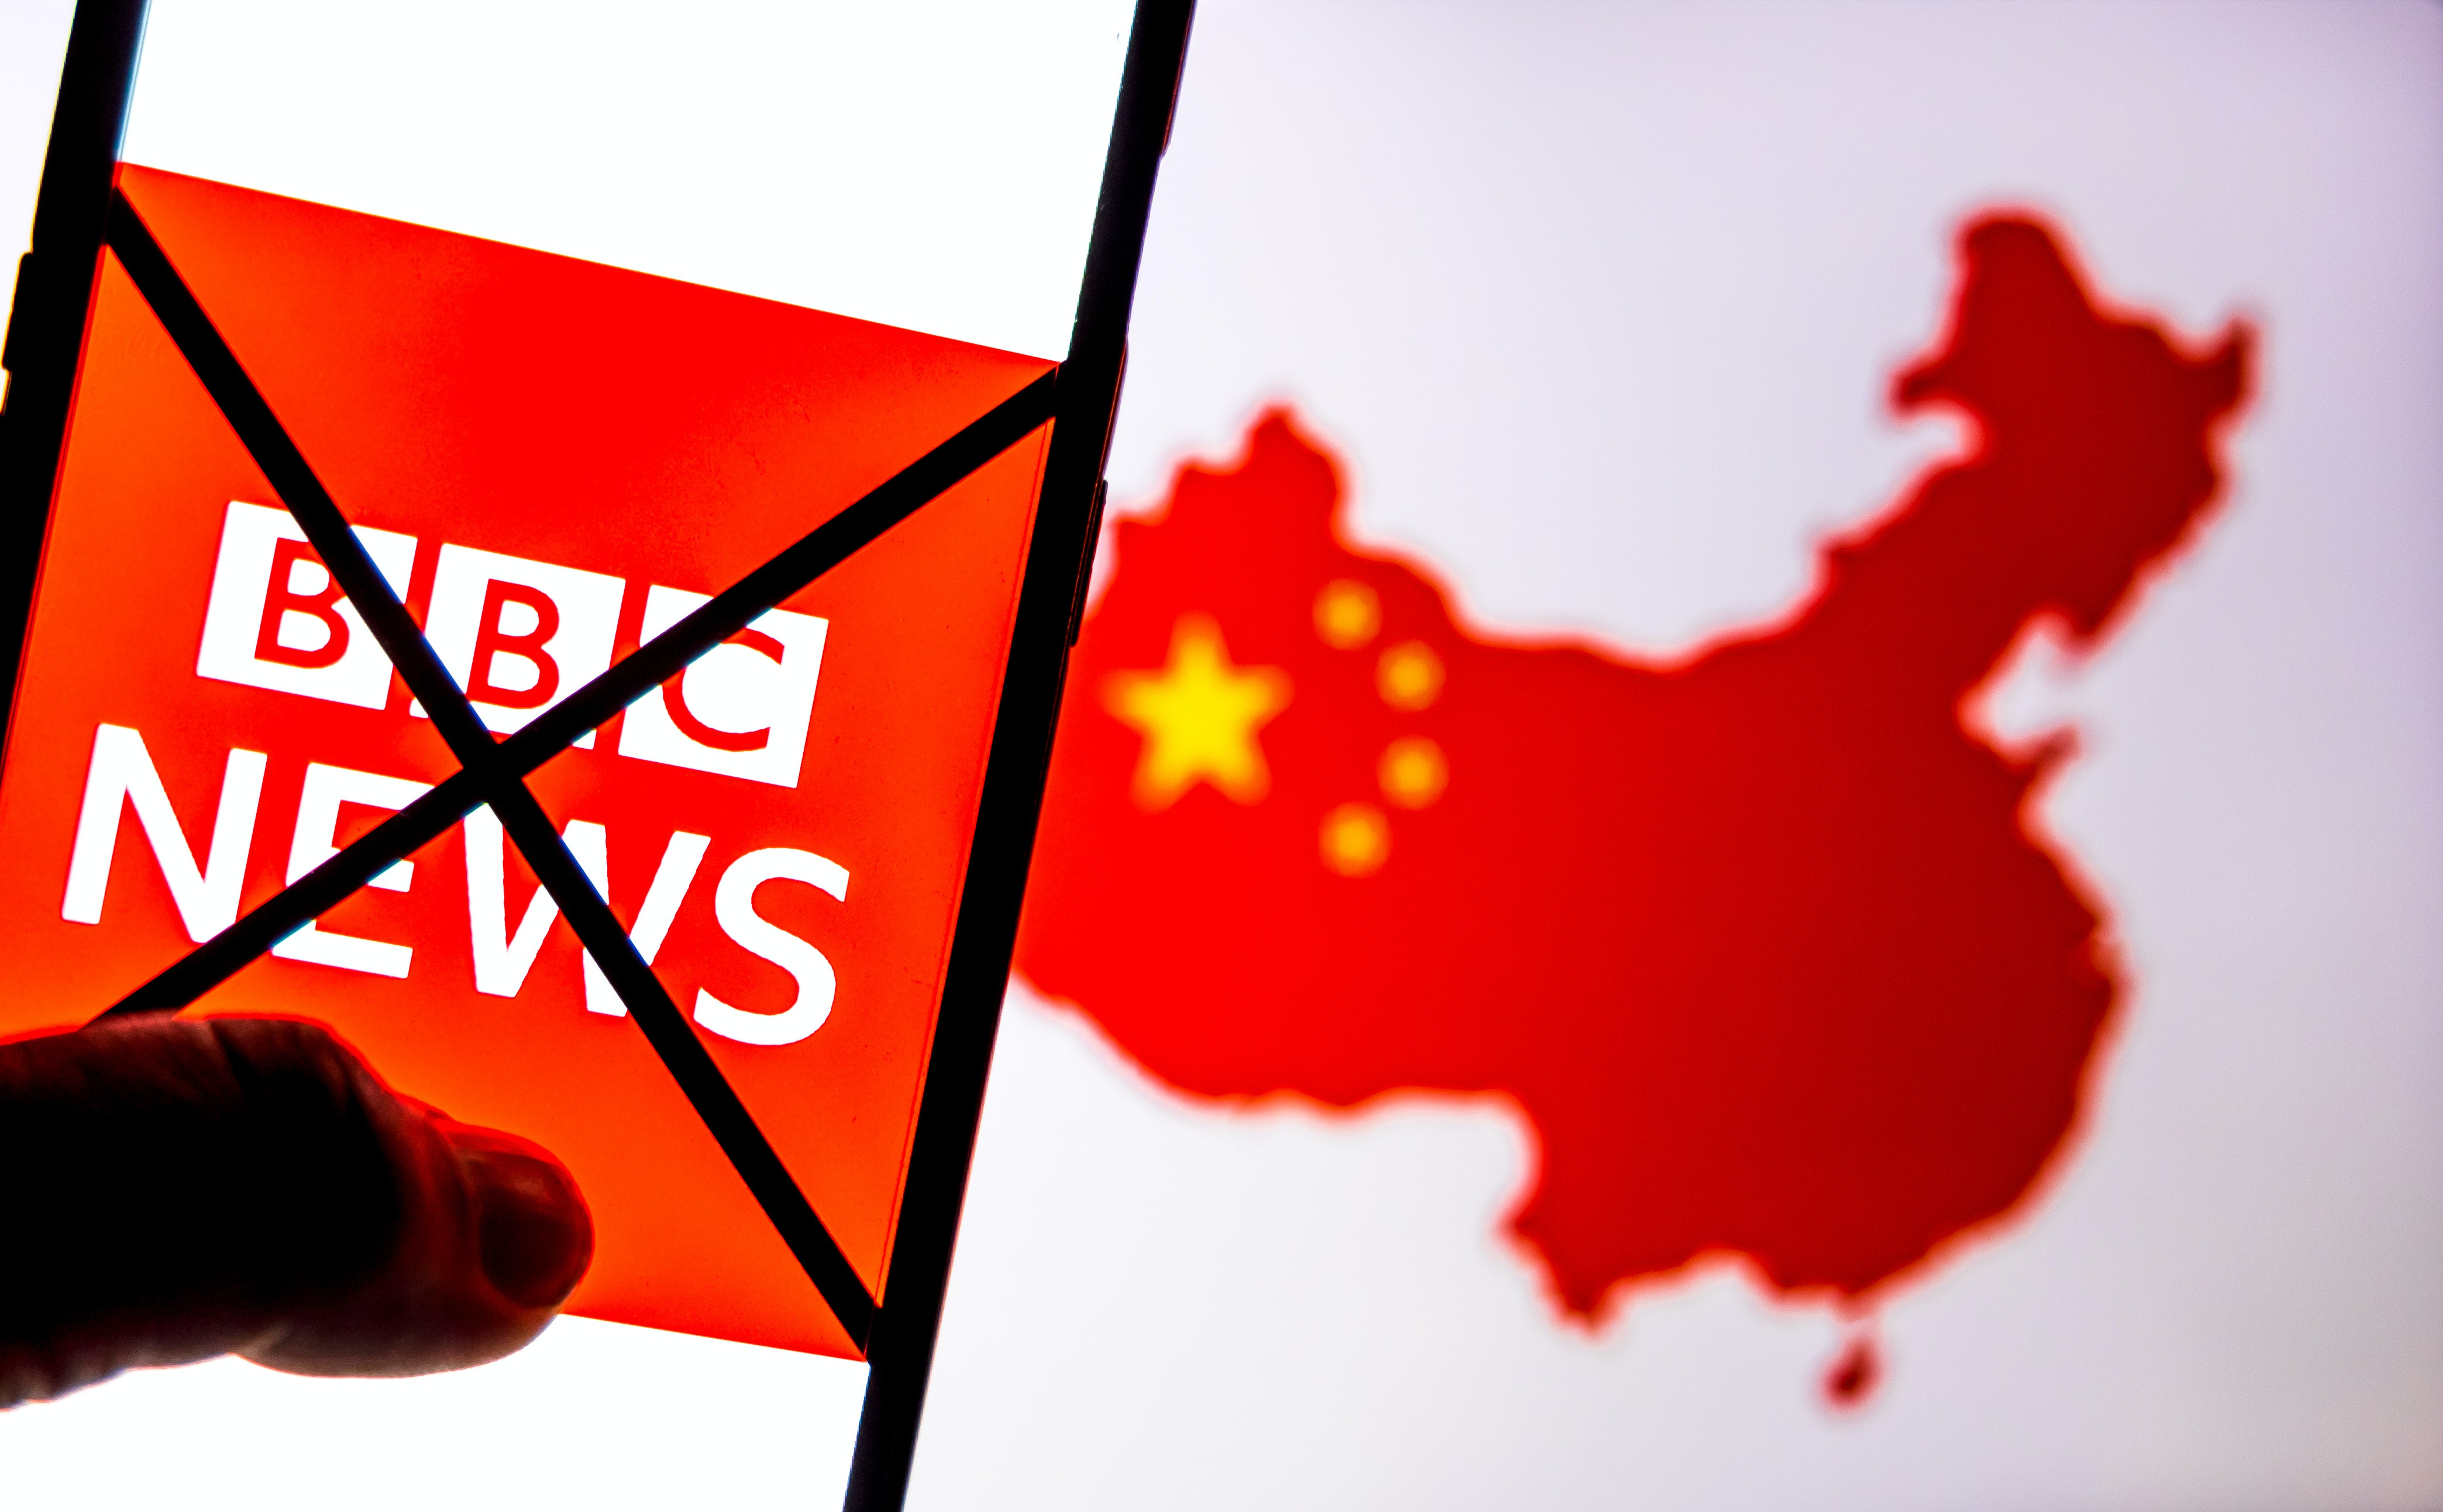 BBC banned from China. Shutterstock.